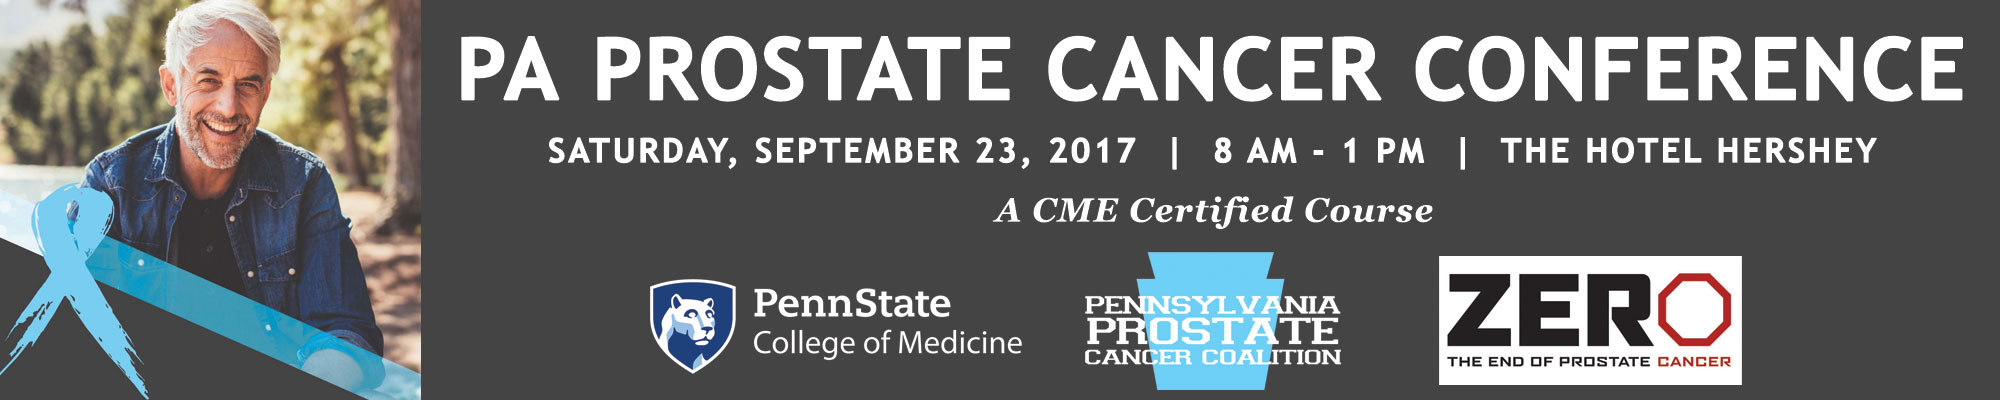 PA Prostate Cancer Conference